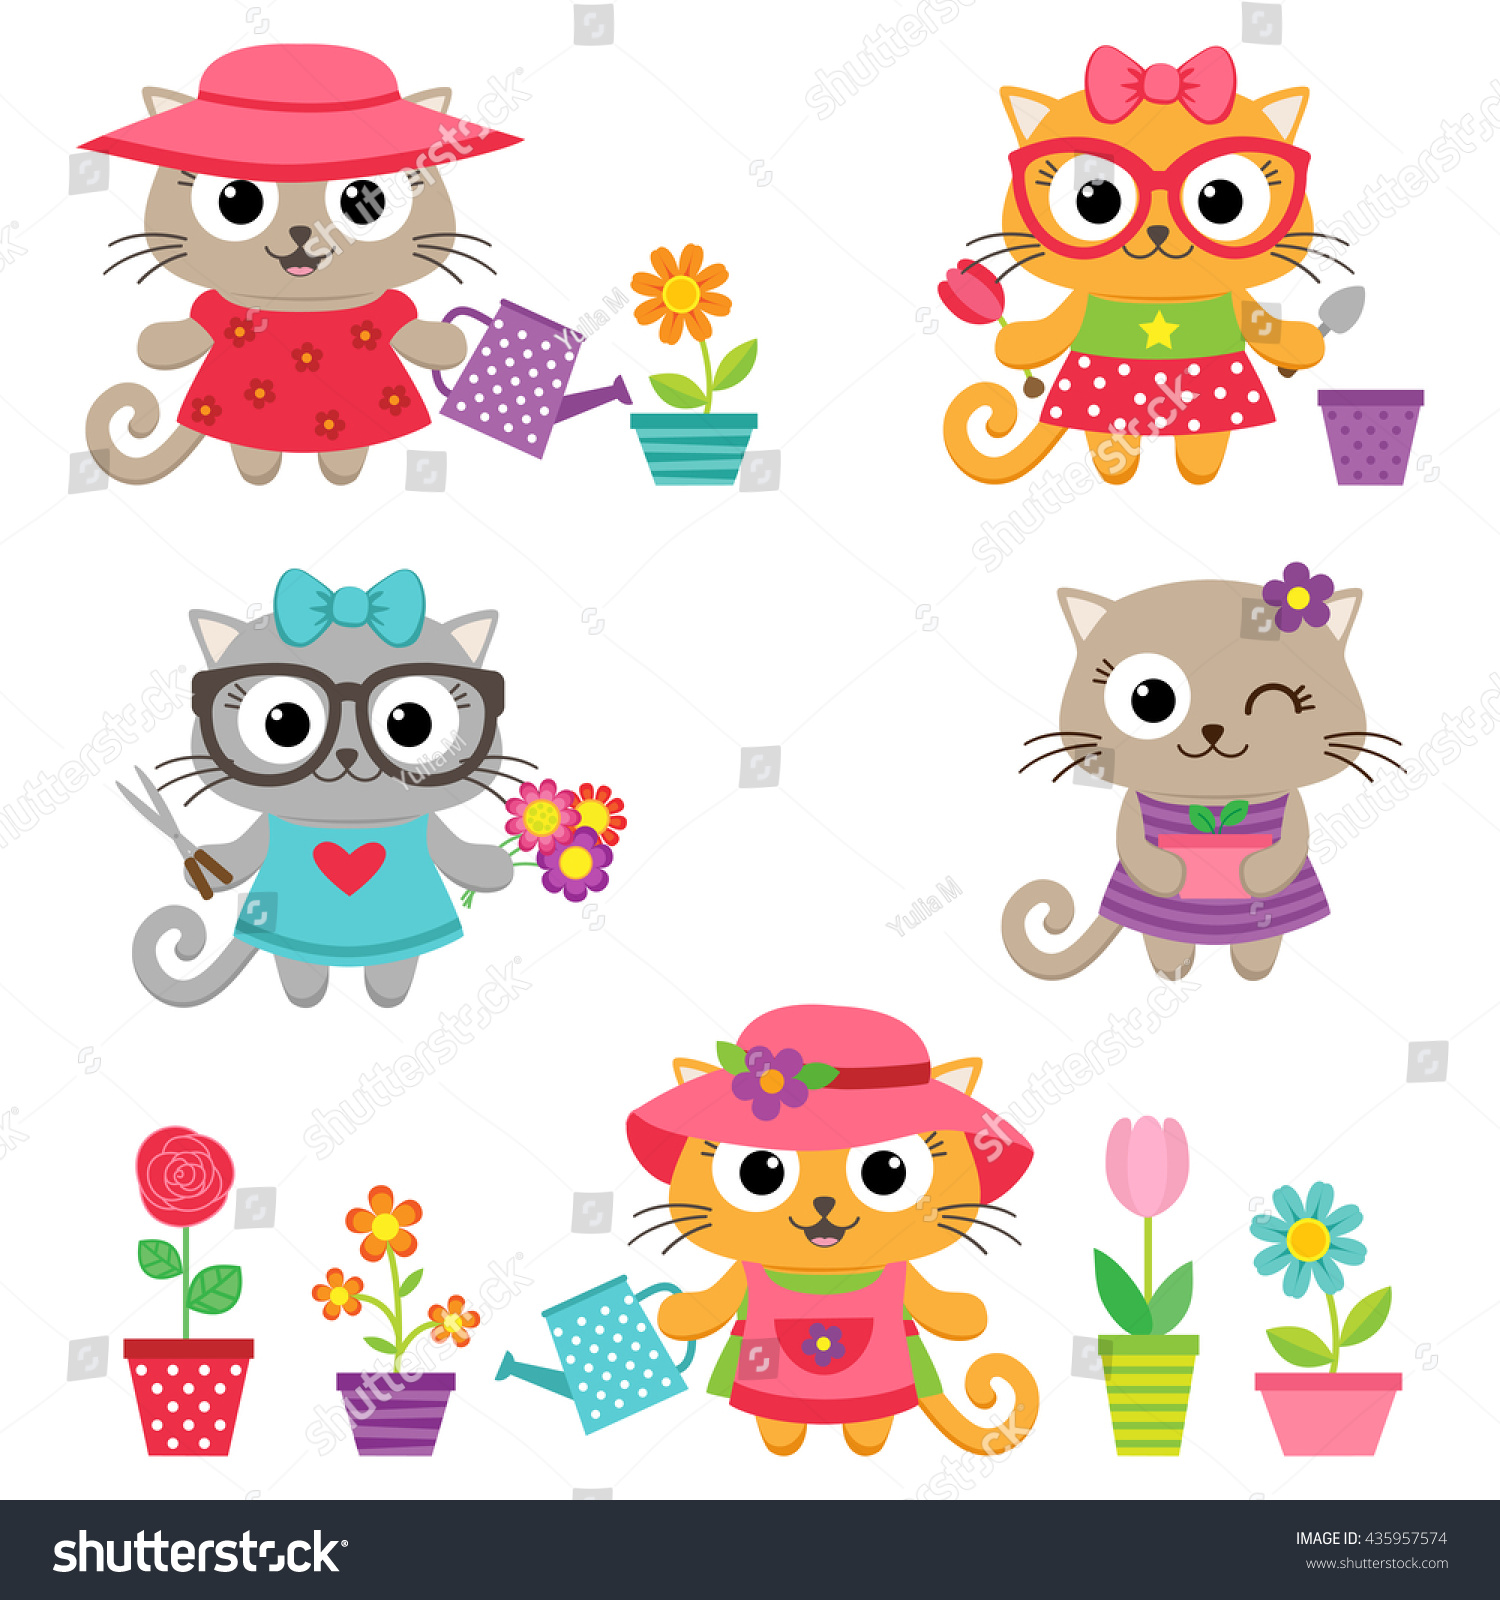 Gardening Vector Set. Cute Little Cat Girls With Gardening Tools